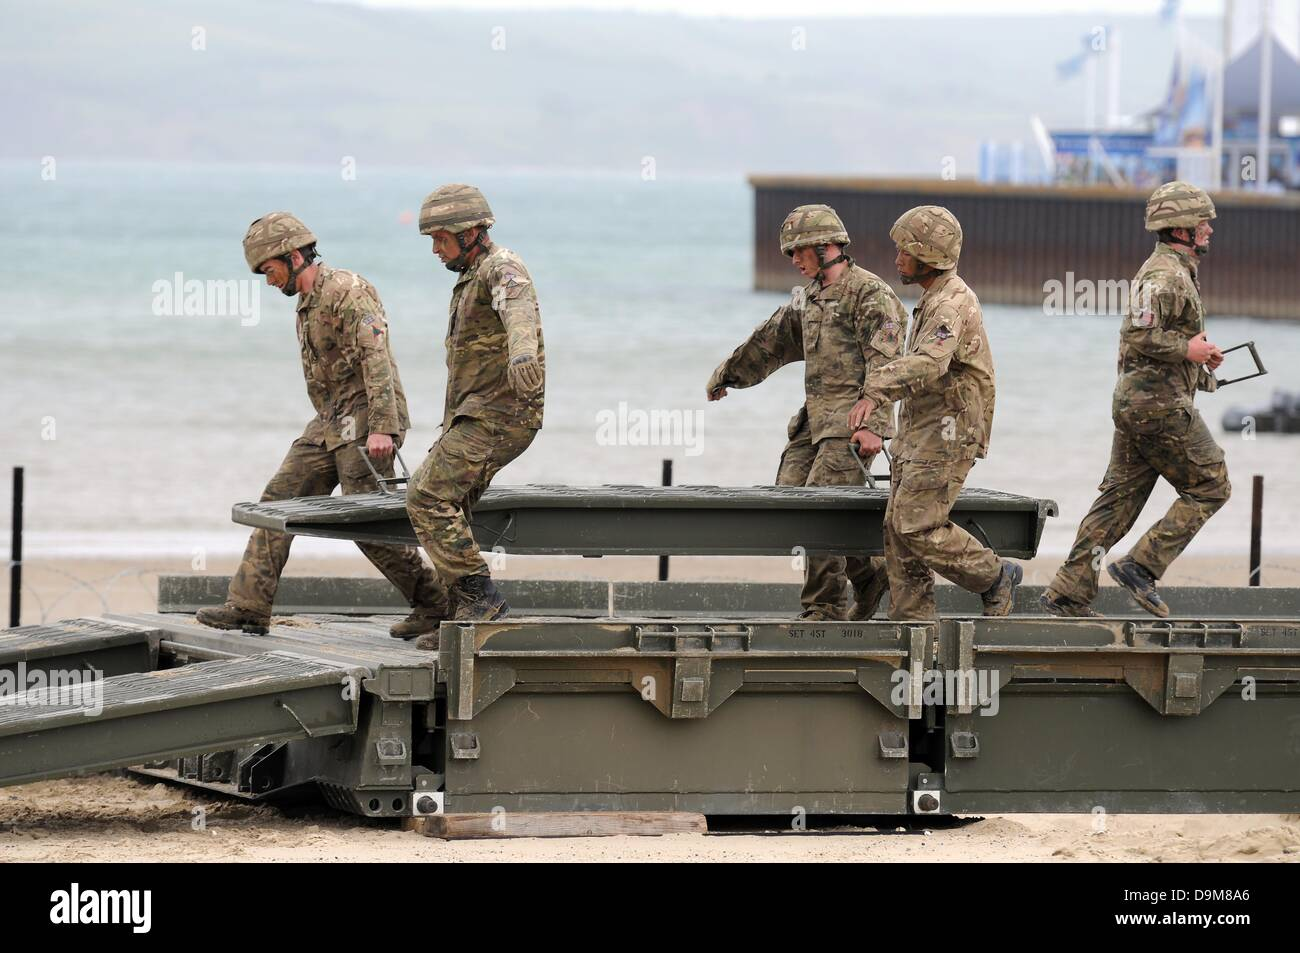 Bridge building by British Army, 22nd Engineer Regiment - Stock Image